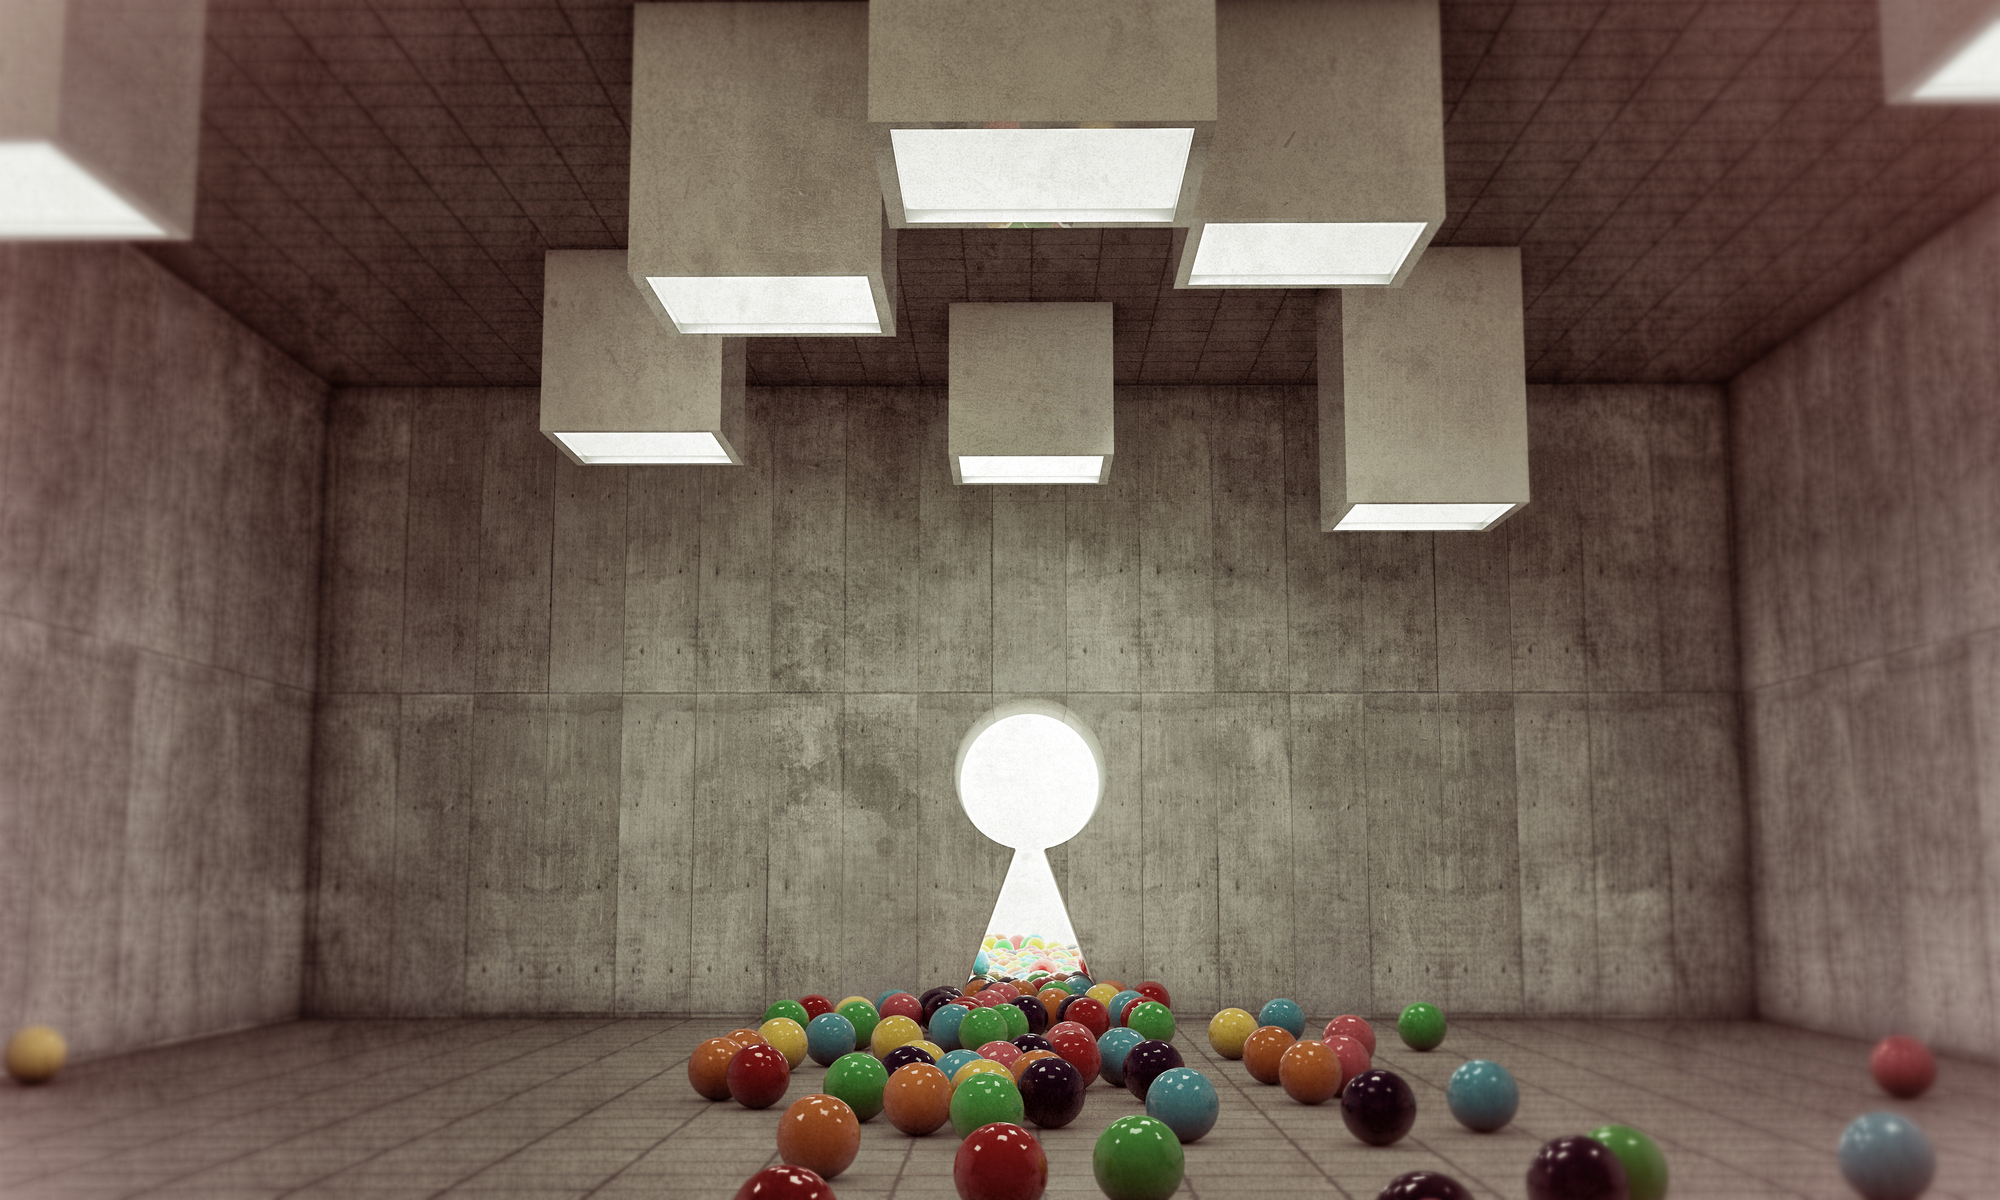 Assorted balls of different colors on the floor of a spacious white room with large keyhole window leading to the outdoors